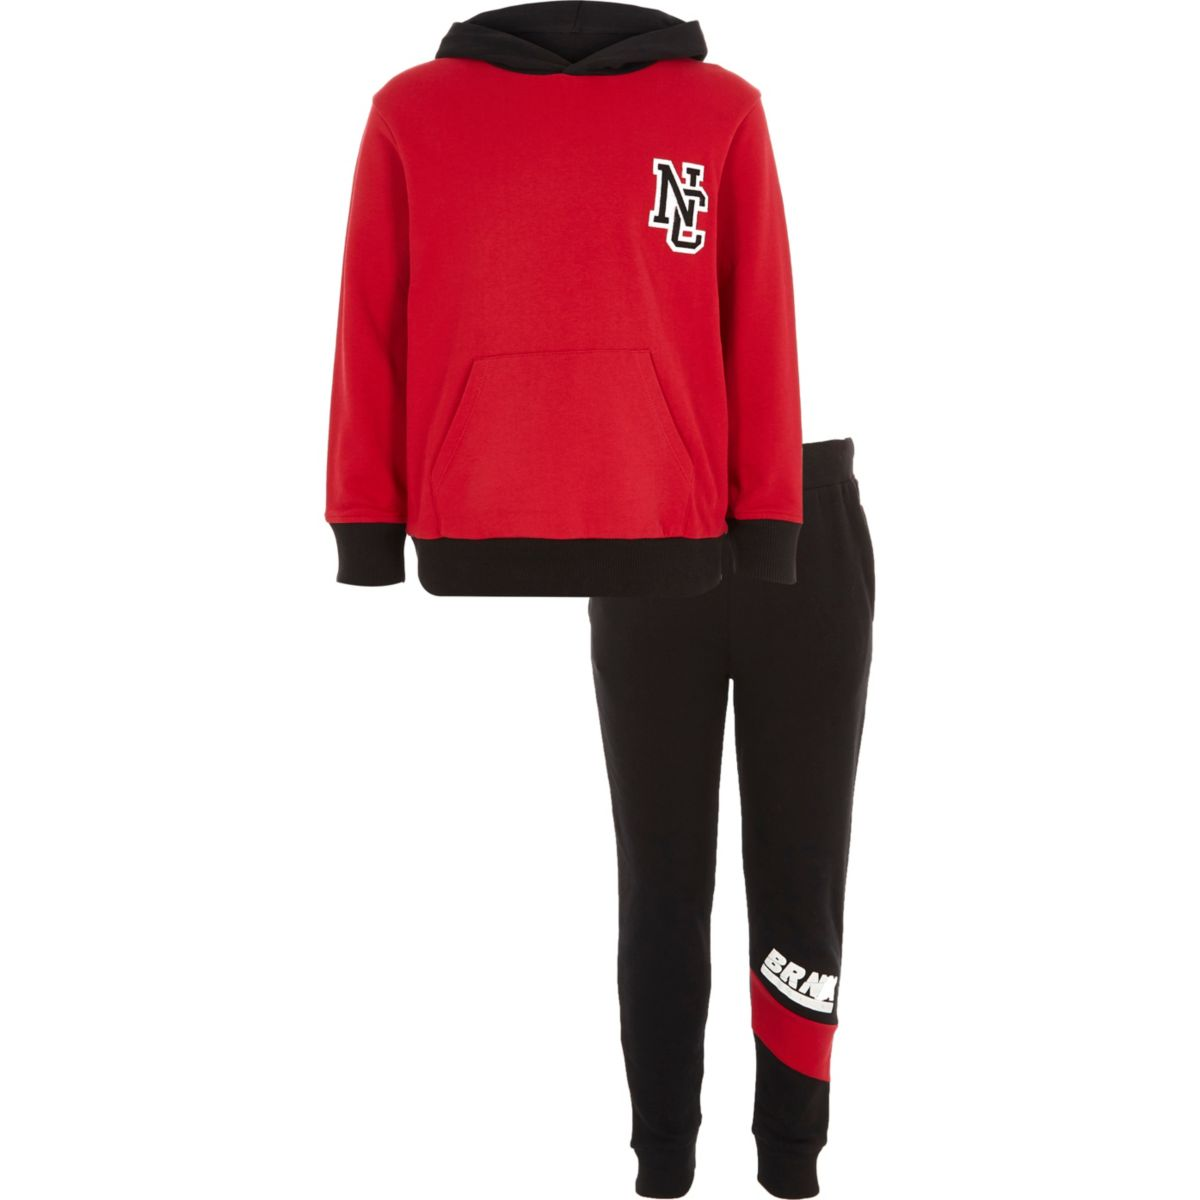 Boys red and navy hoodie joggers outfit